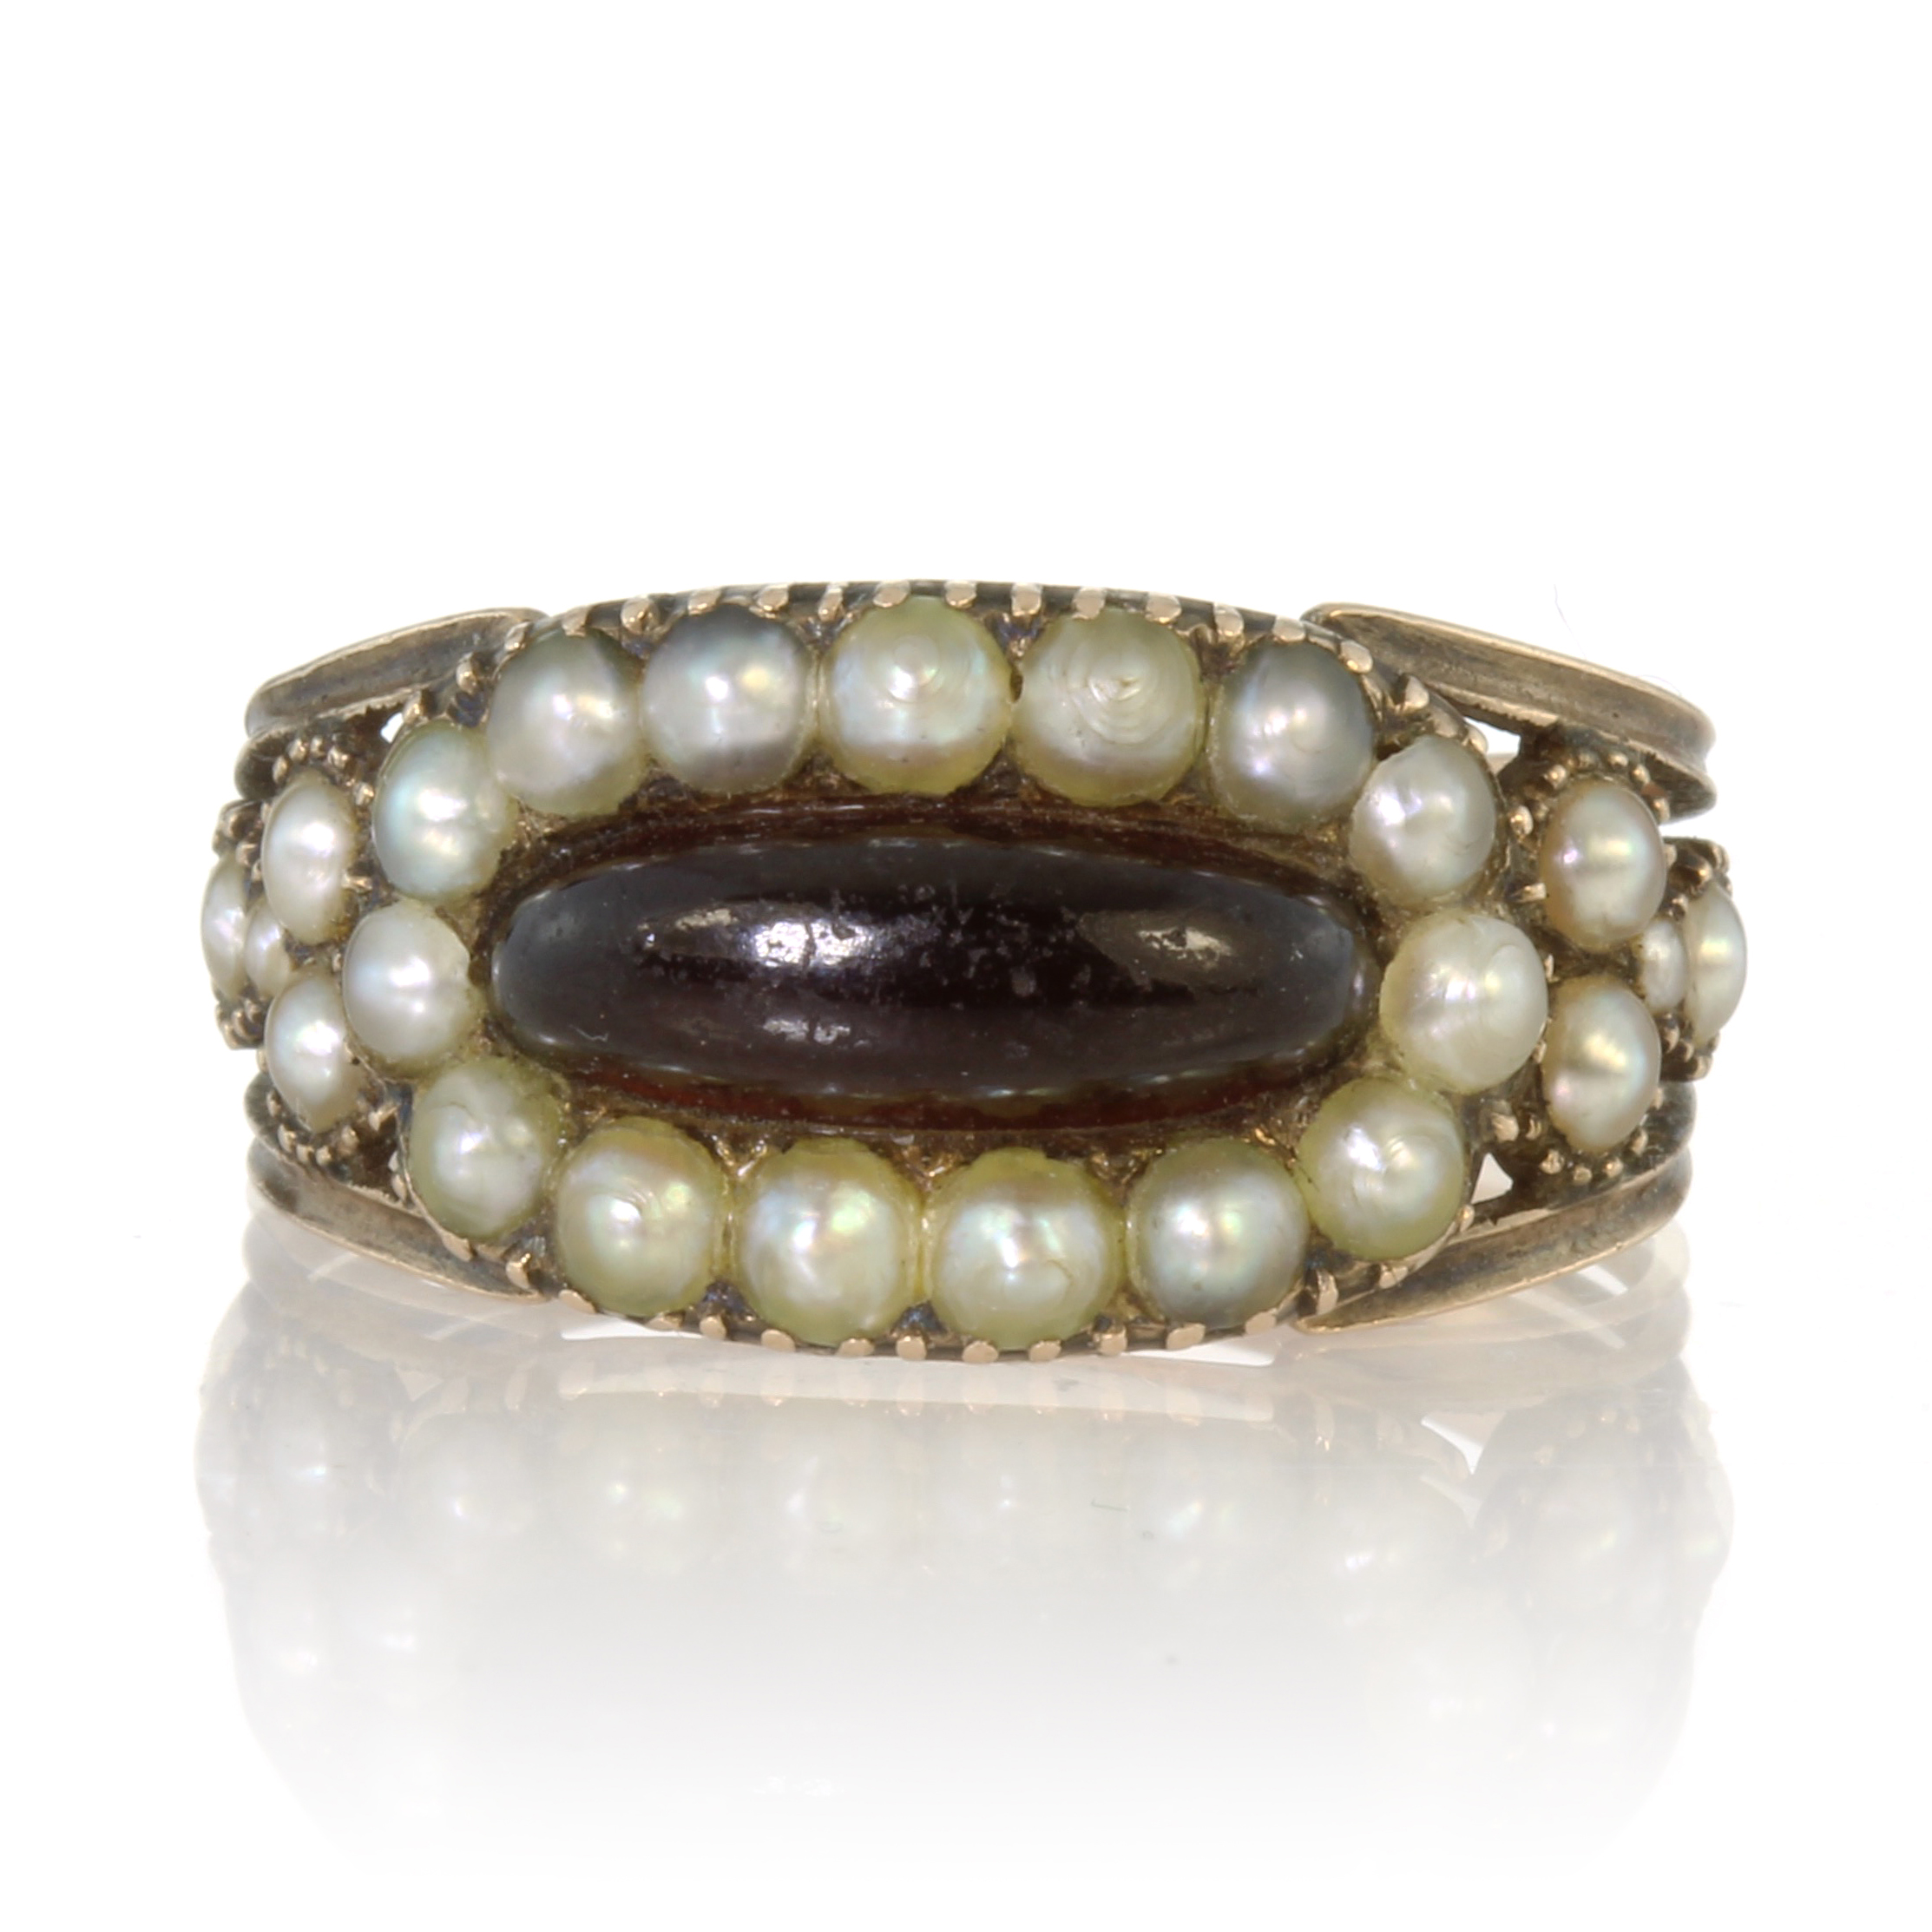 Los 56 - An antique Georgian garnet and seed pearl ring in high carat yellow gold set with an elongated